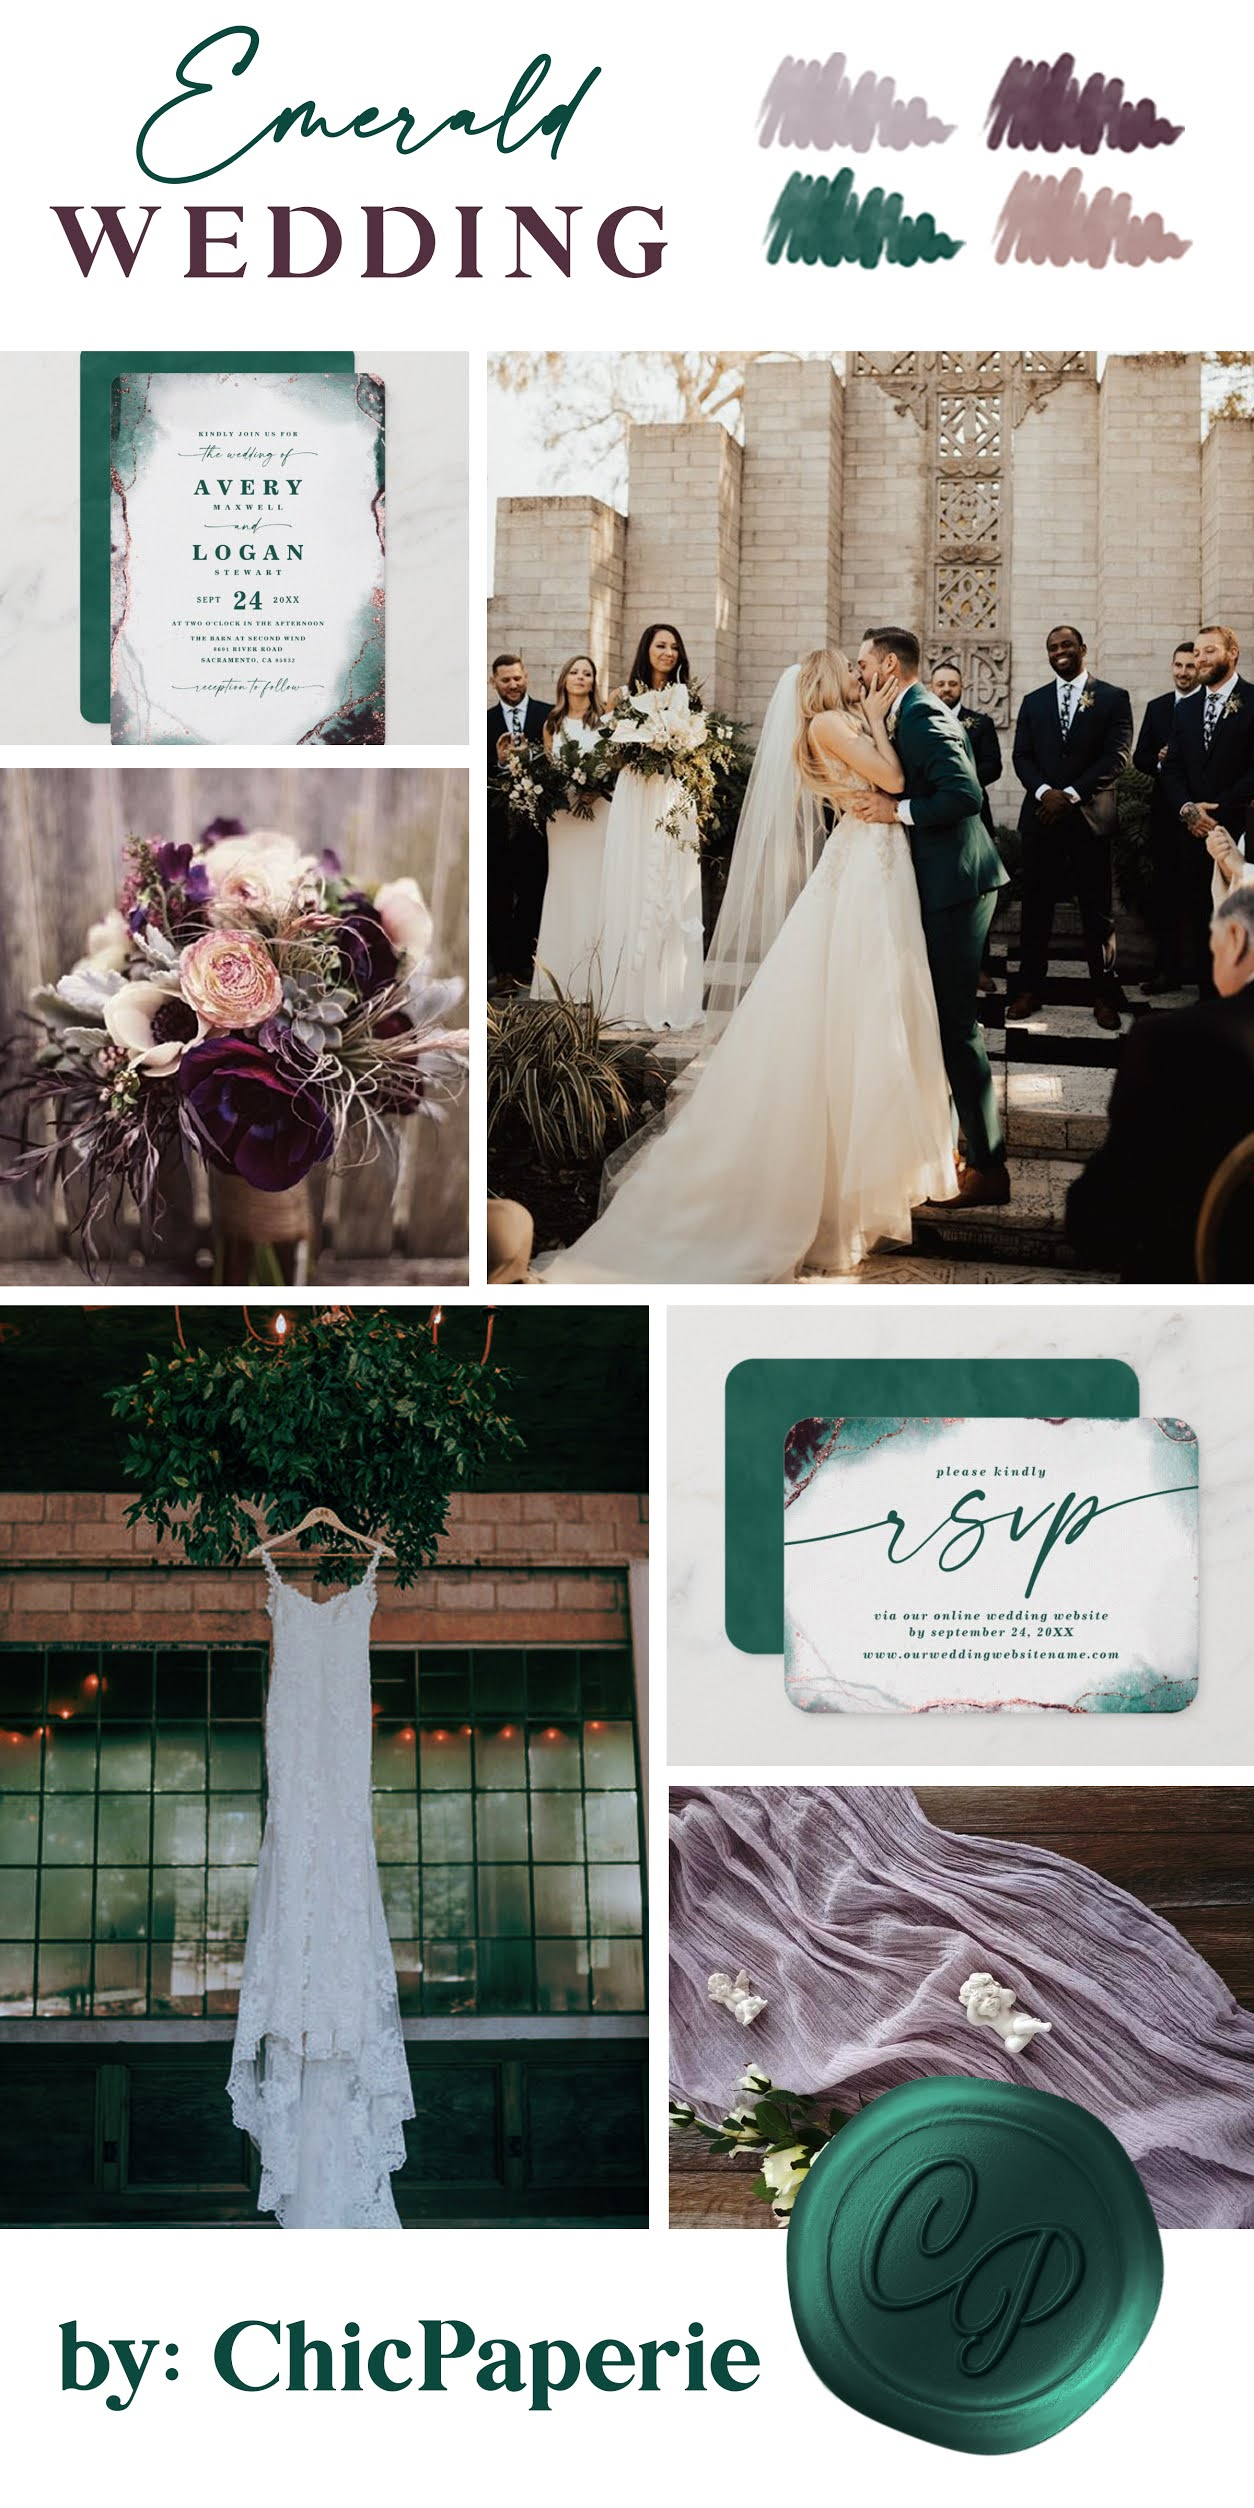 Emerald Abstract Wedding Invitations, Wedding Day Photo, Floral Arrangement, Wedding Dress, Mauve Table Runners, and RSVP Cards